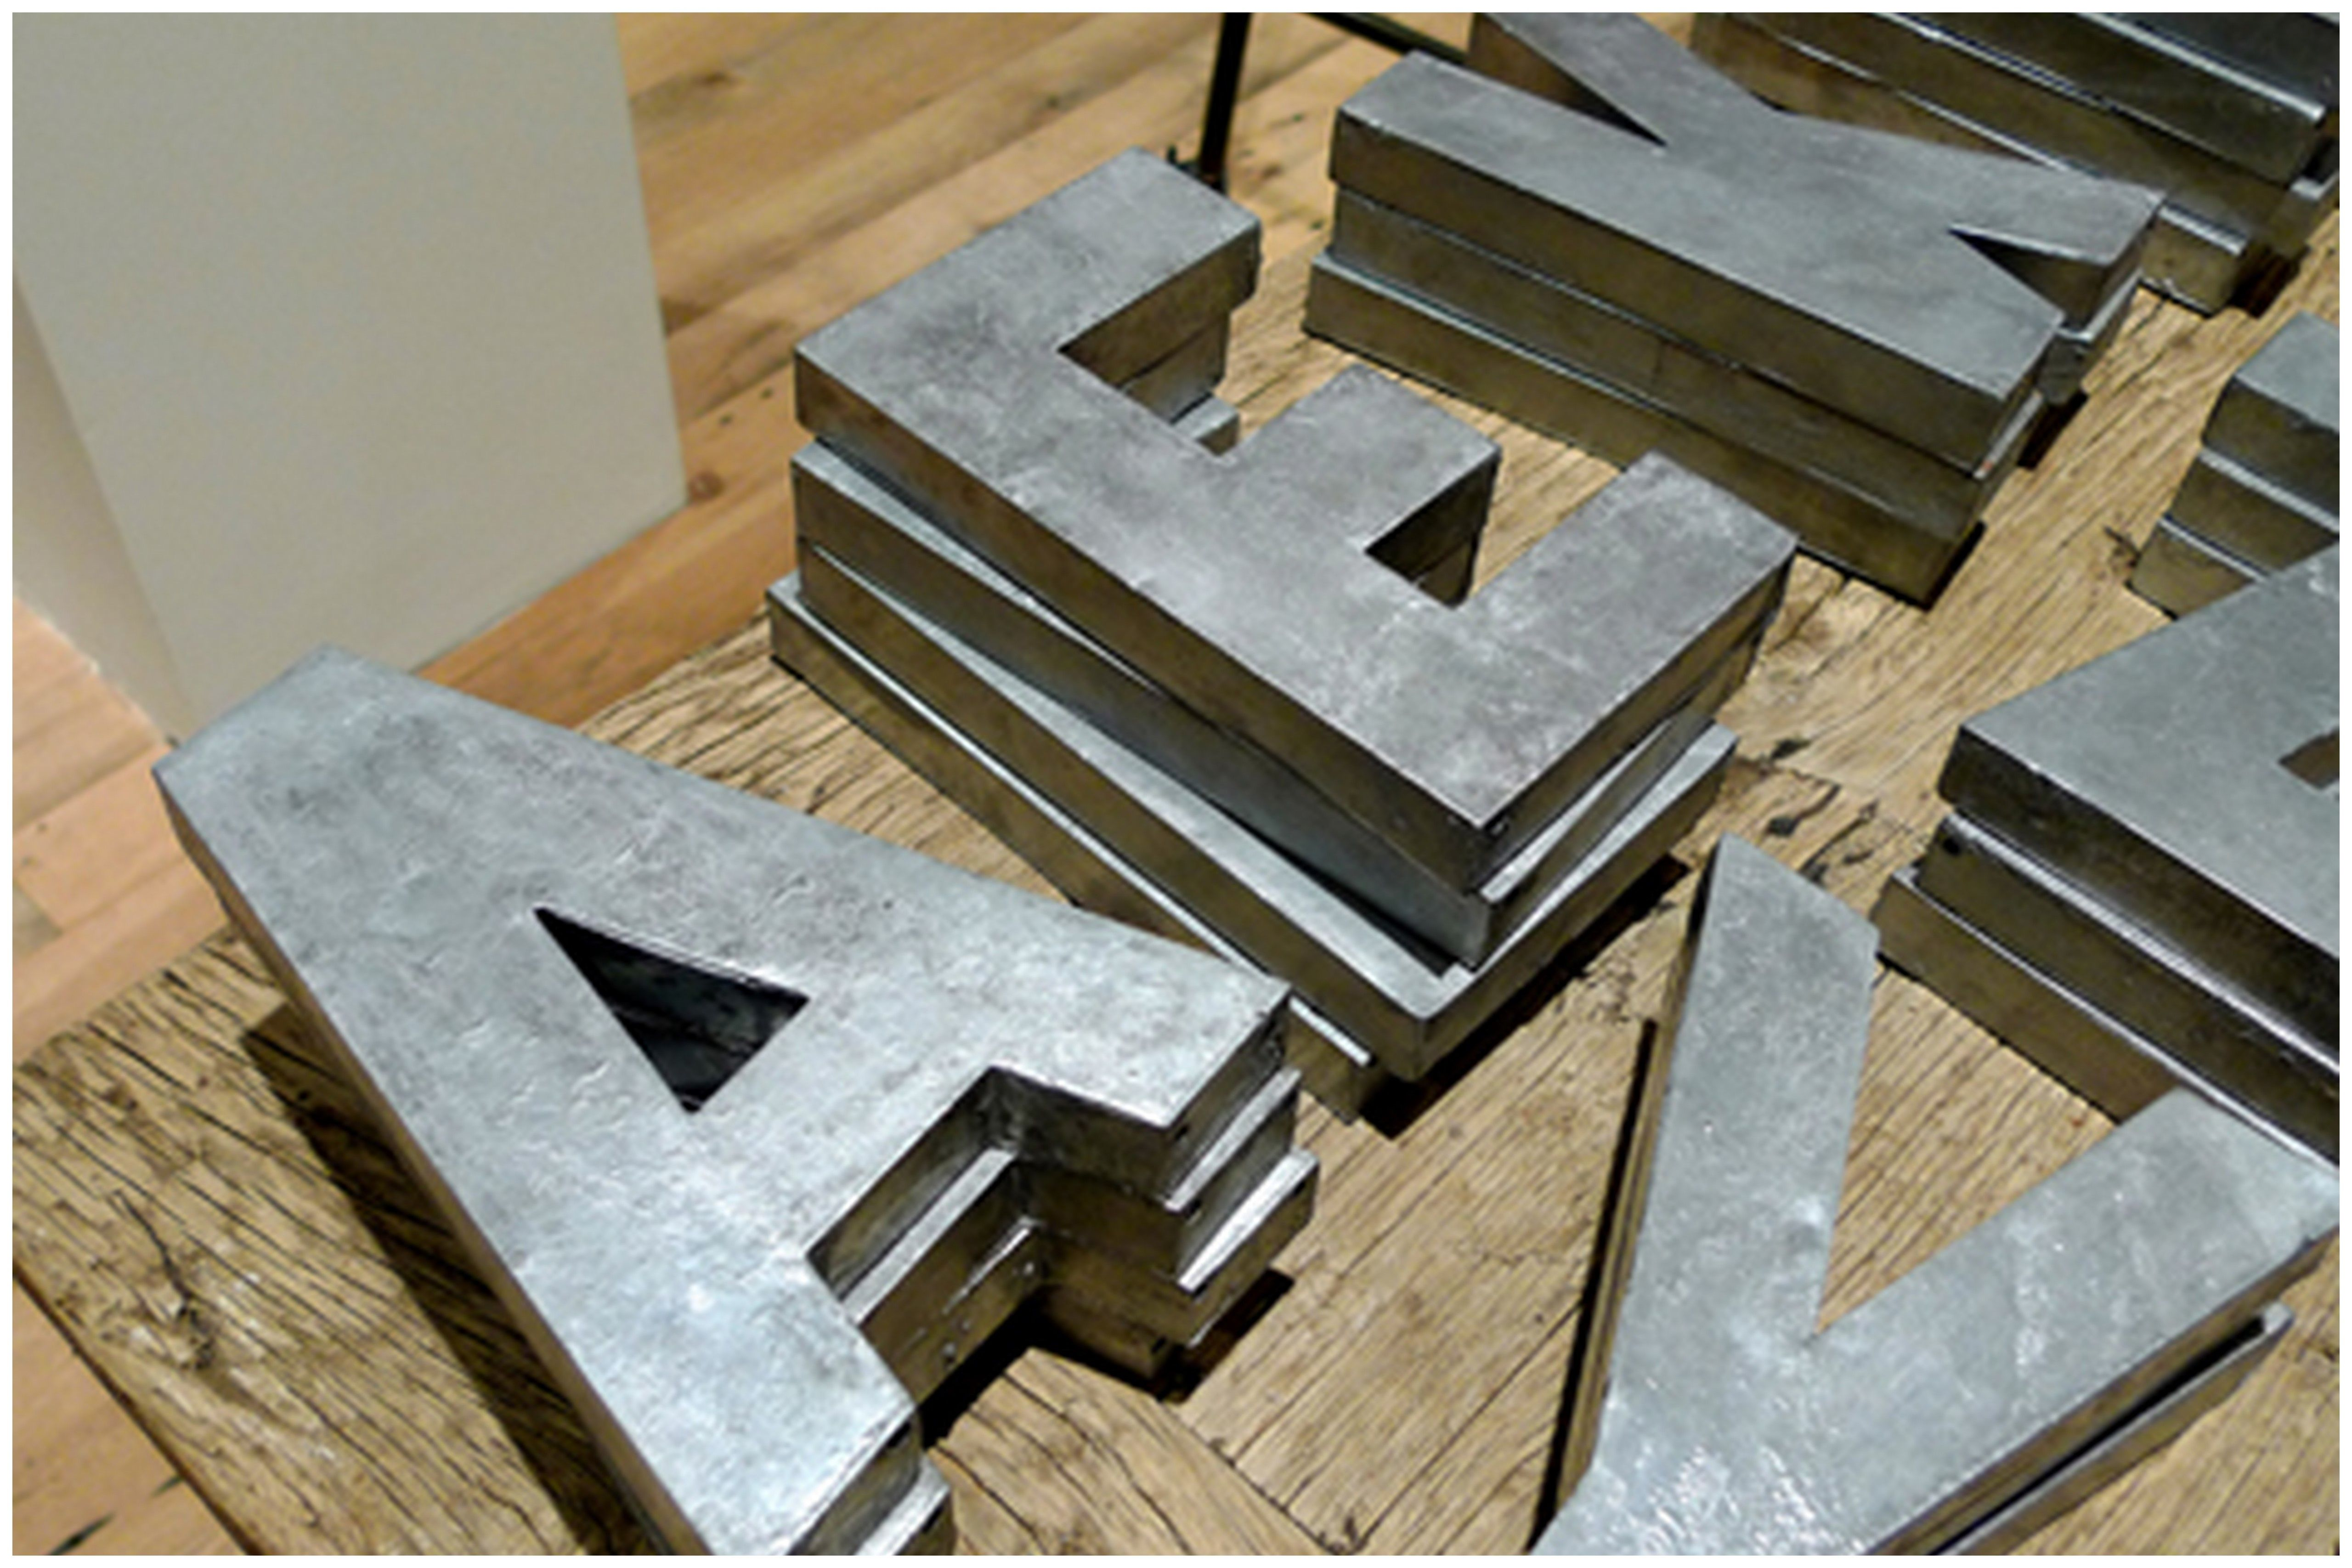 Paper Mache Letters With Metallic Spray Paint Cheaper Version Of The Zinc Metal Letters Cheap Wall Art Diy Zinc Letters Diy Wall